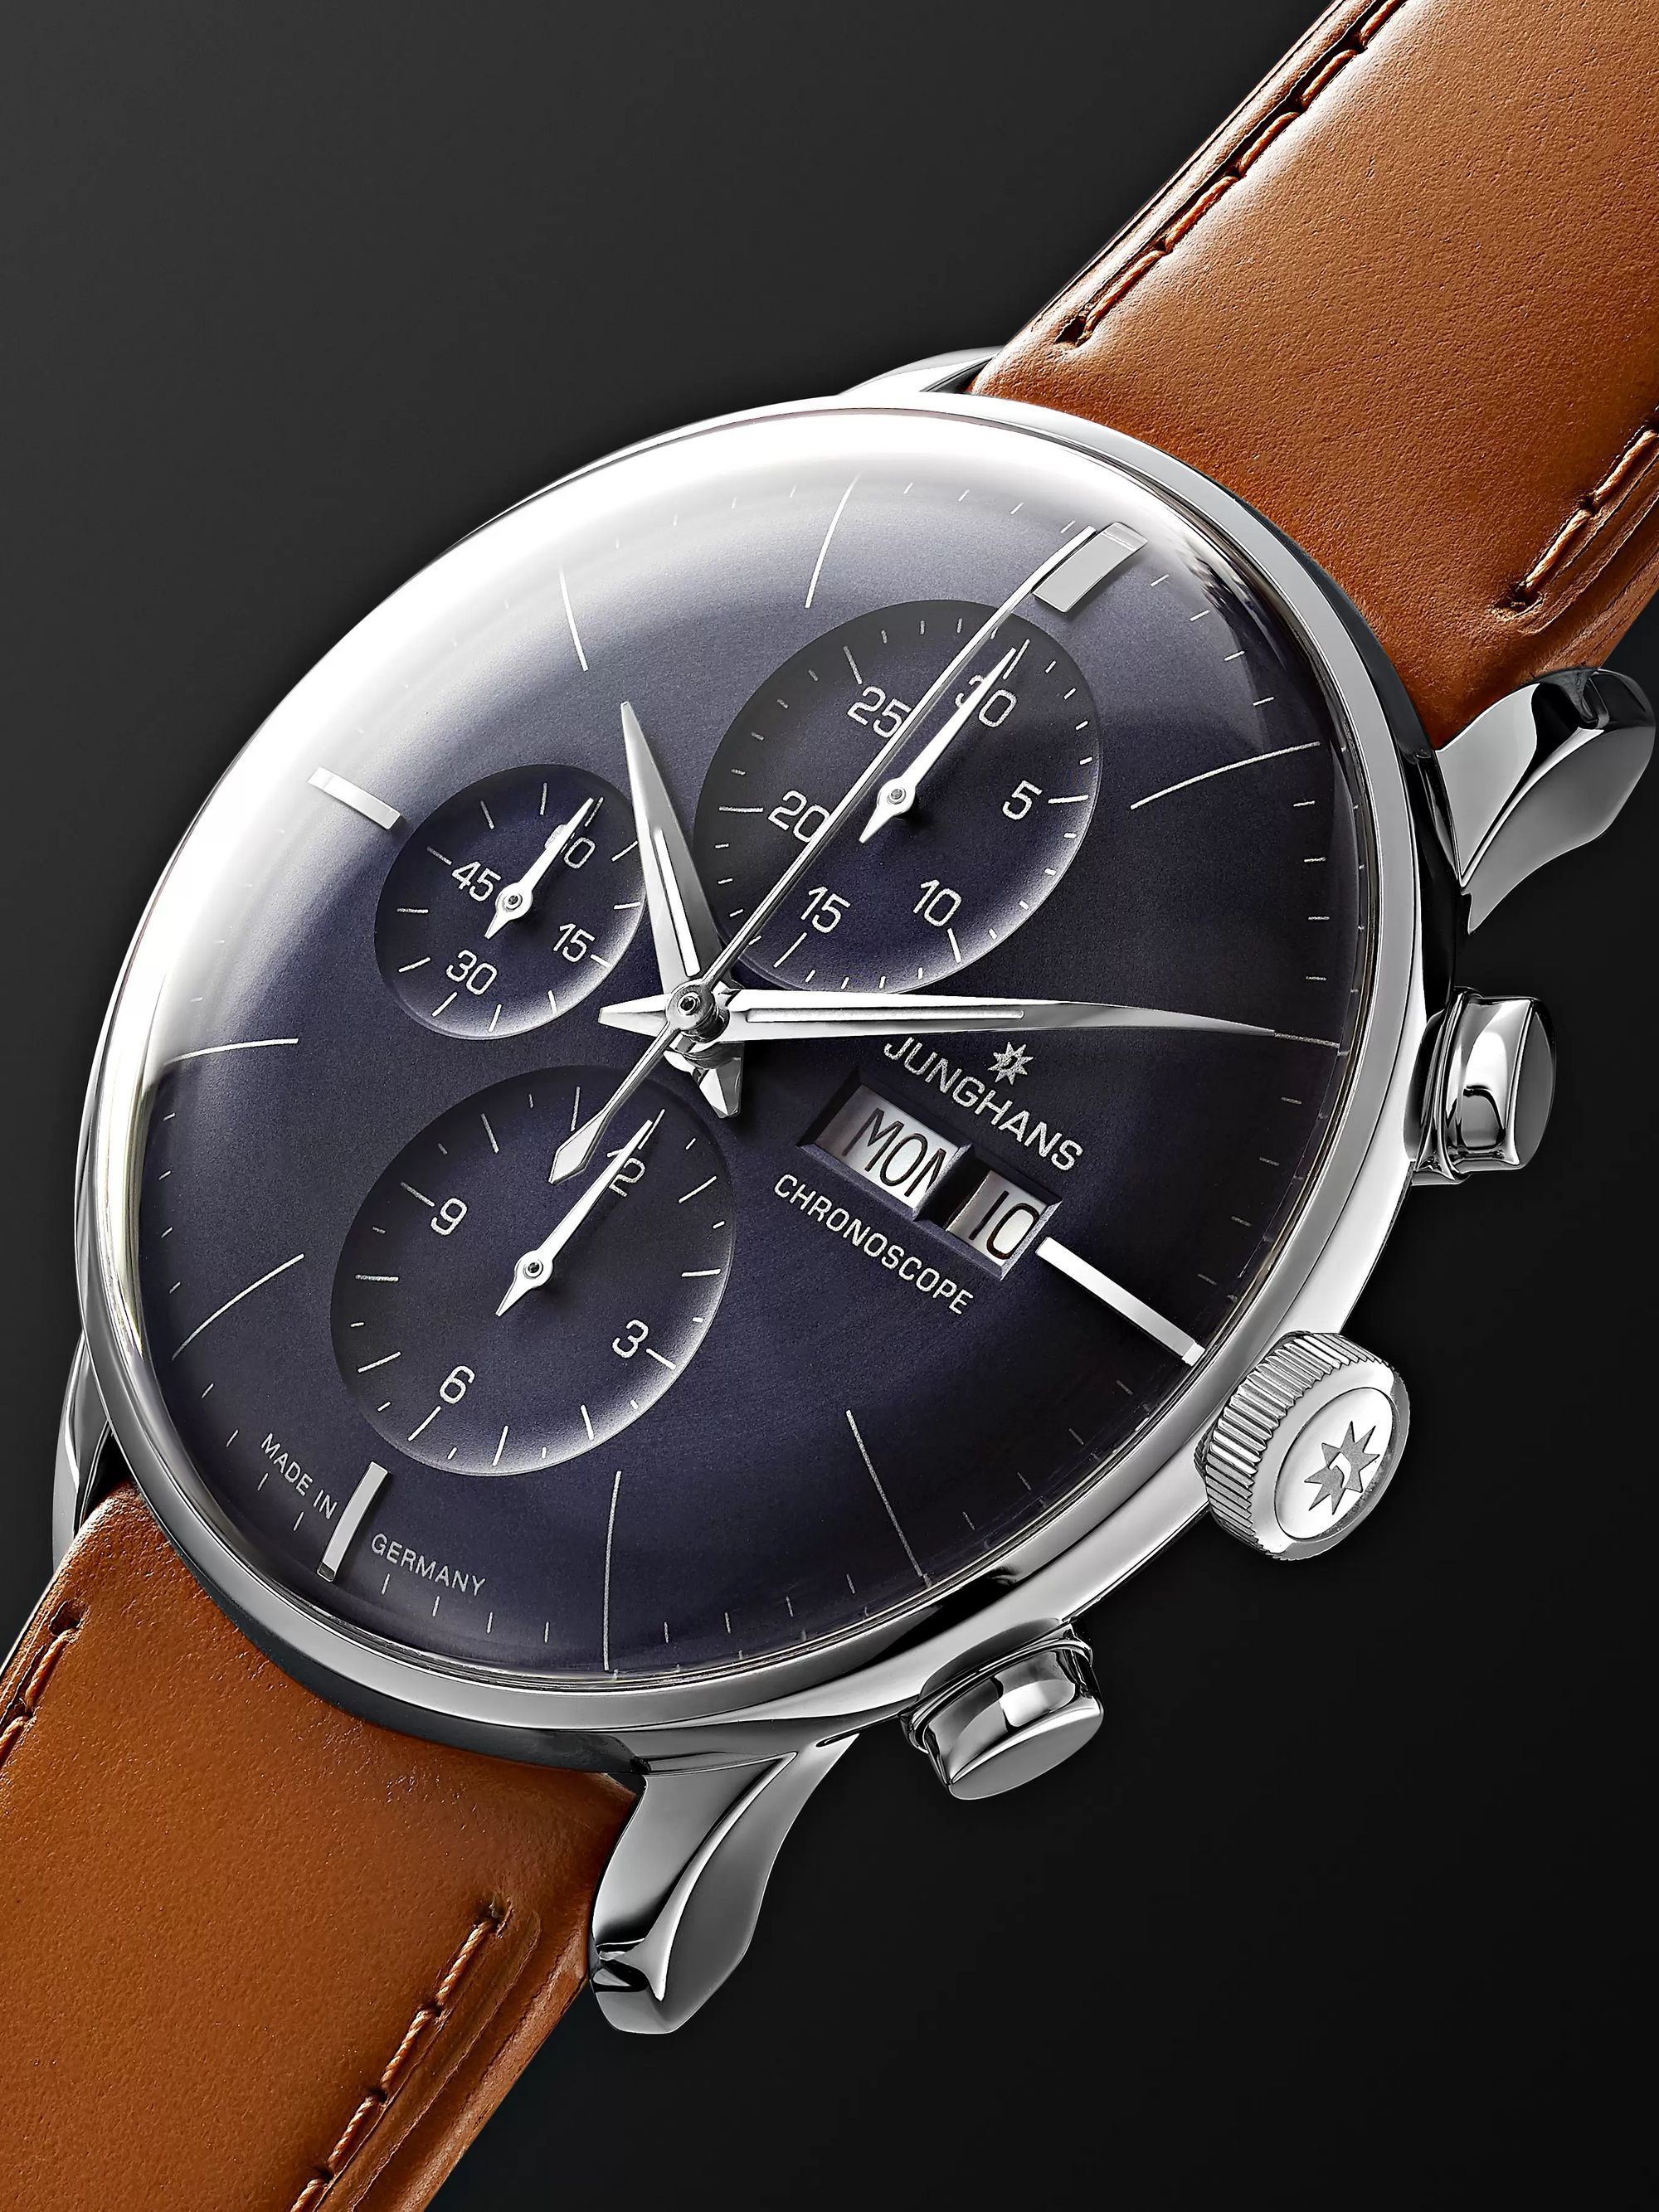 Junghans Meister Chronoscope 40mm Stainless Steel and Leather Watch, Ref. No. 027/4526.01